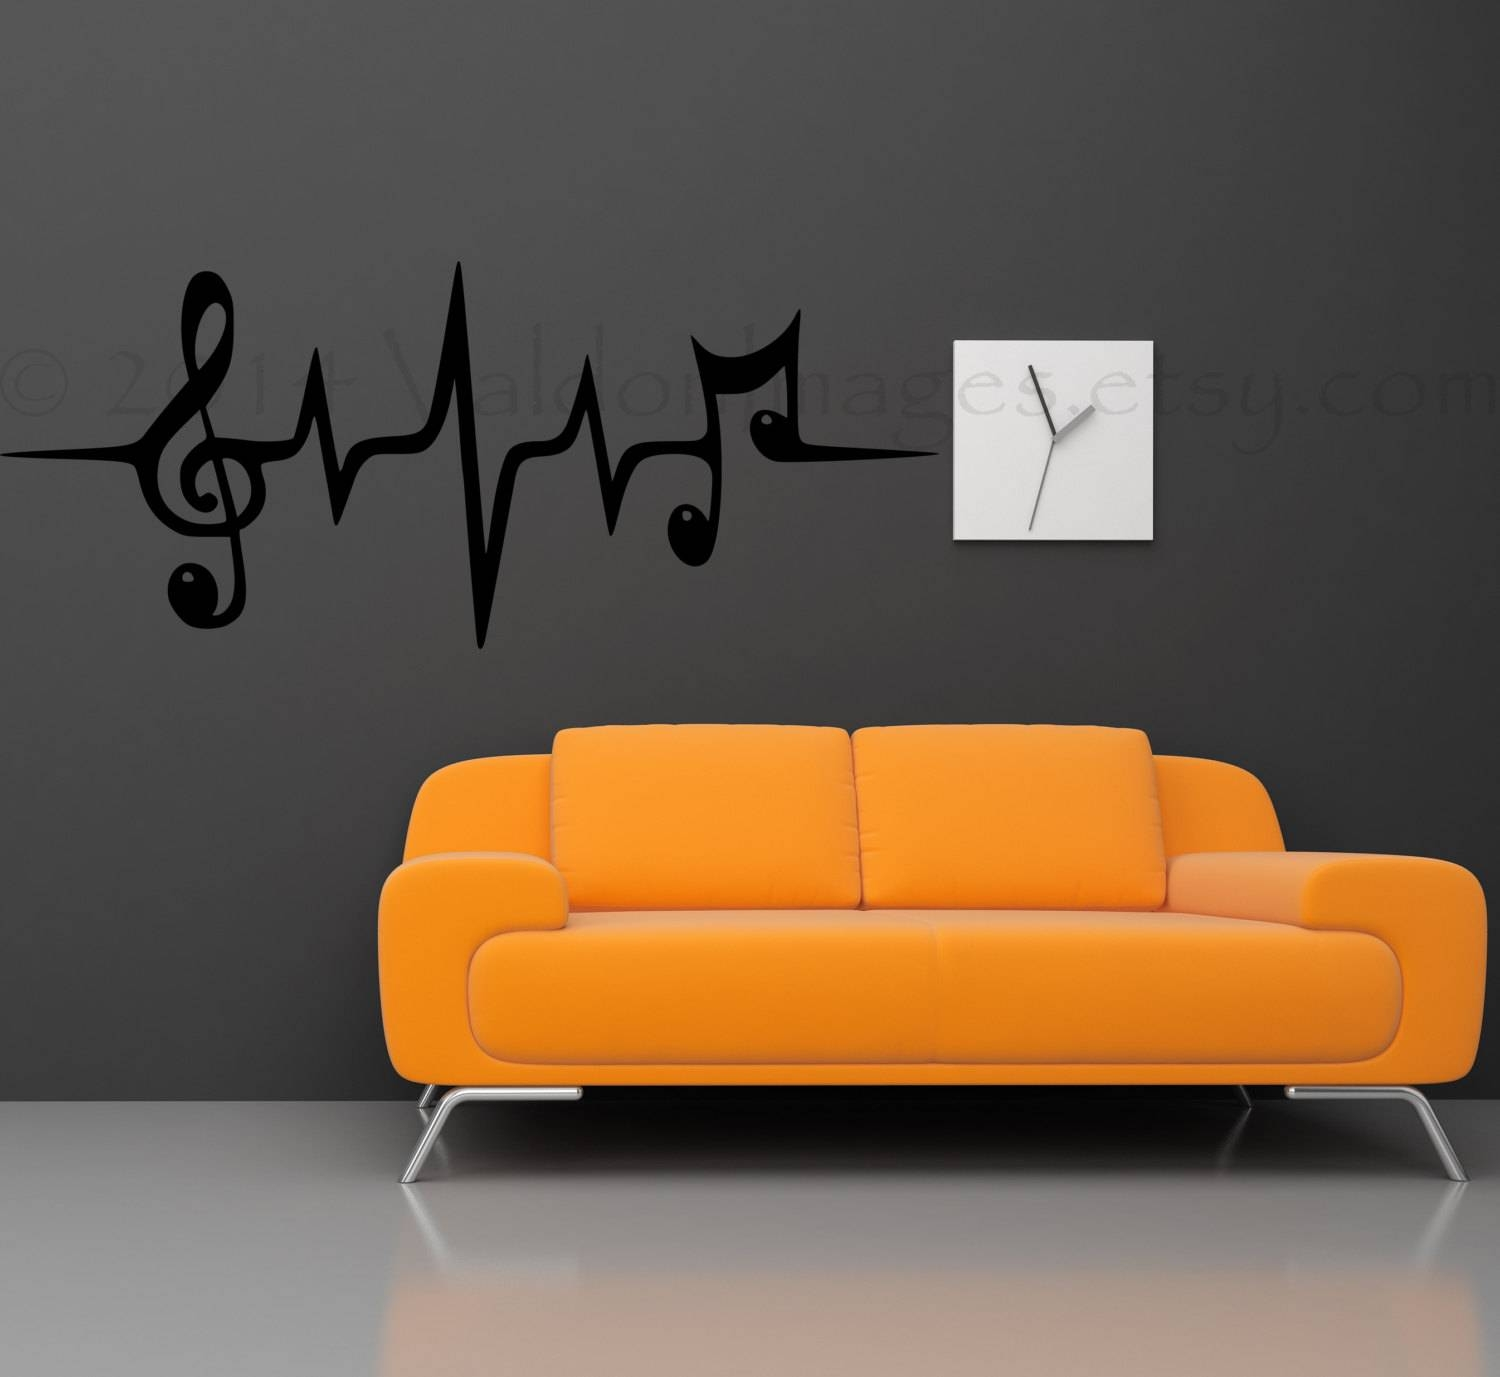 Music Note Wall Decal Music Wall Decal Heartbeat Wall Inside Most Up To Date Music Note Wall Art (View 8 of 20)